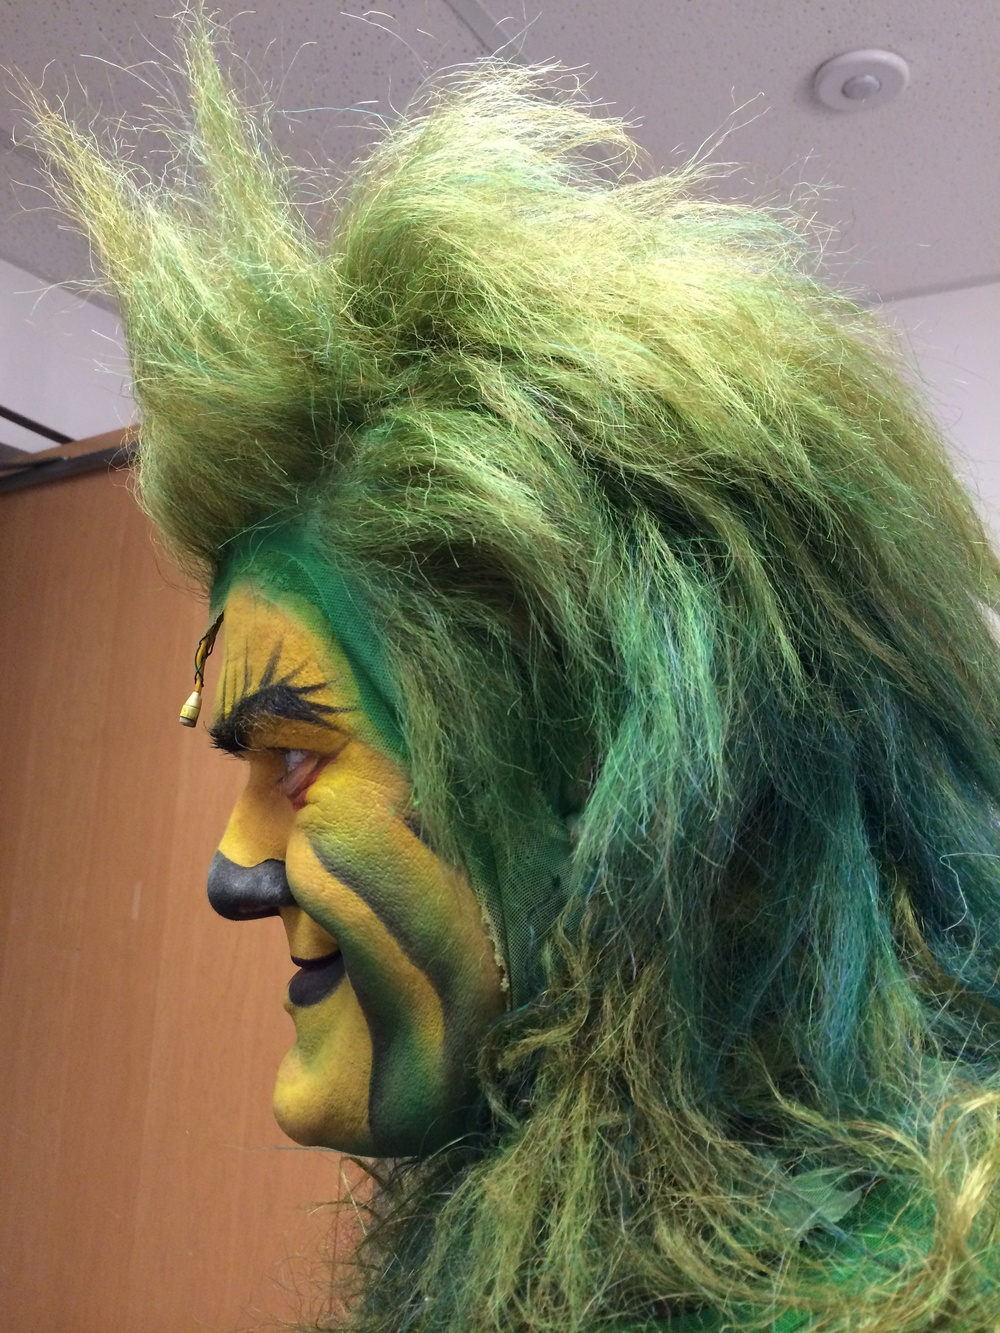 Close up of the Grinch makeup.